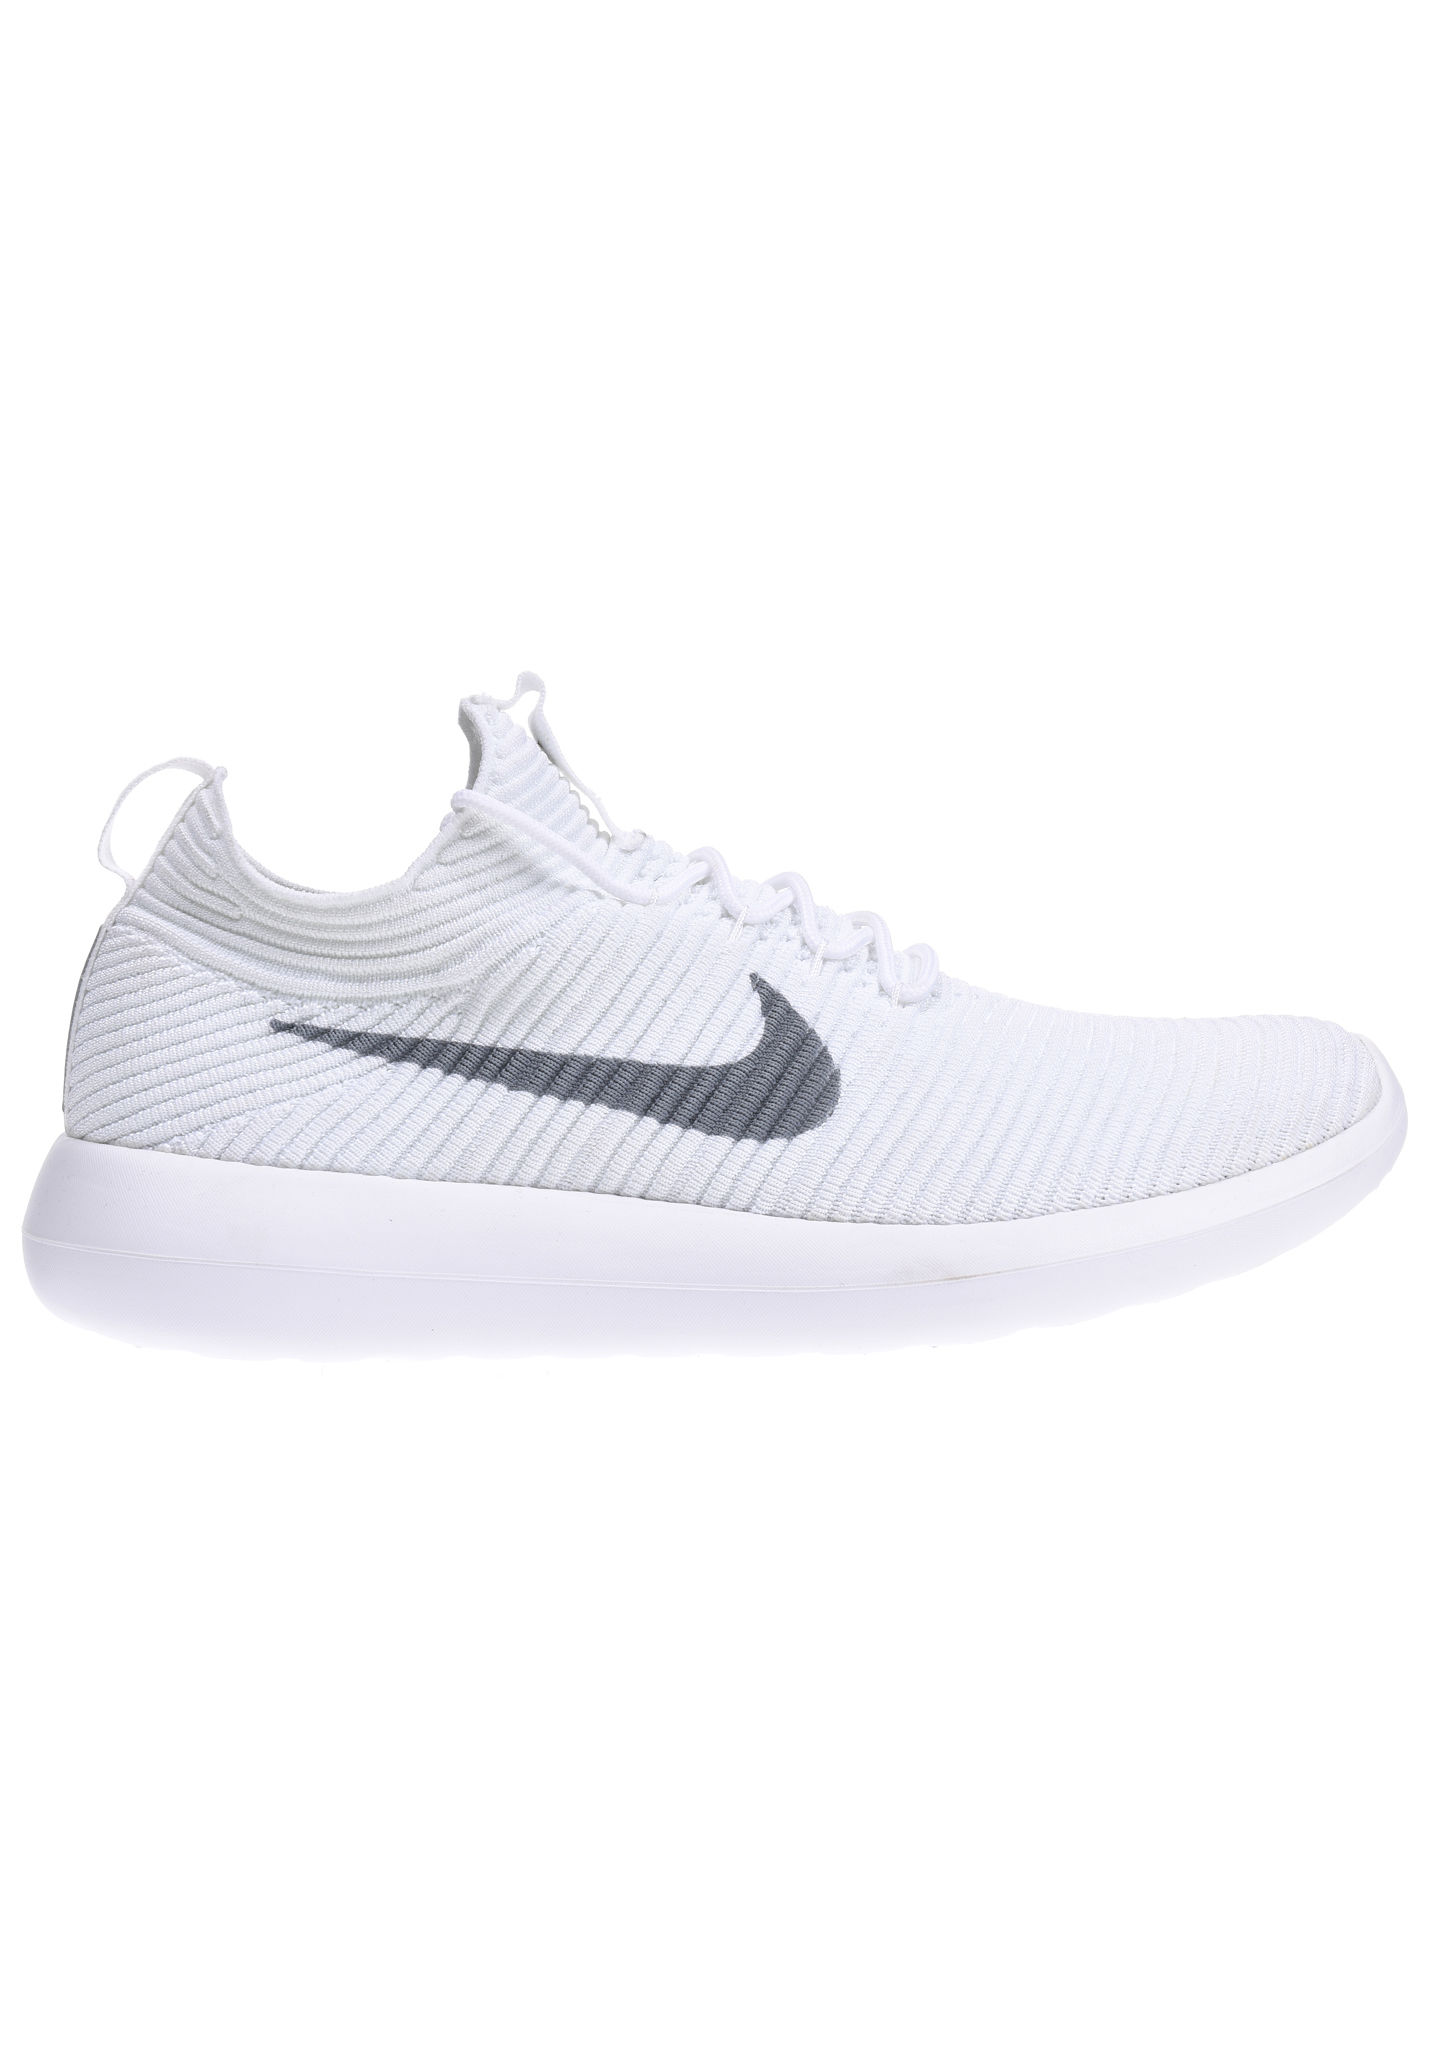 new arrival 6ae7c 6352e NIKE SPORTSWEAR Roshe Two Flyknit V2 - Zapatillas para Hombres - Blanco -  Planet Sports